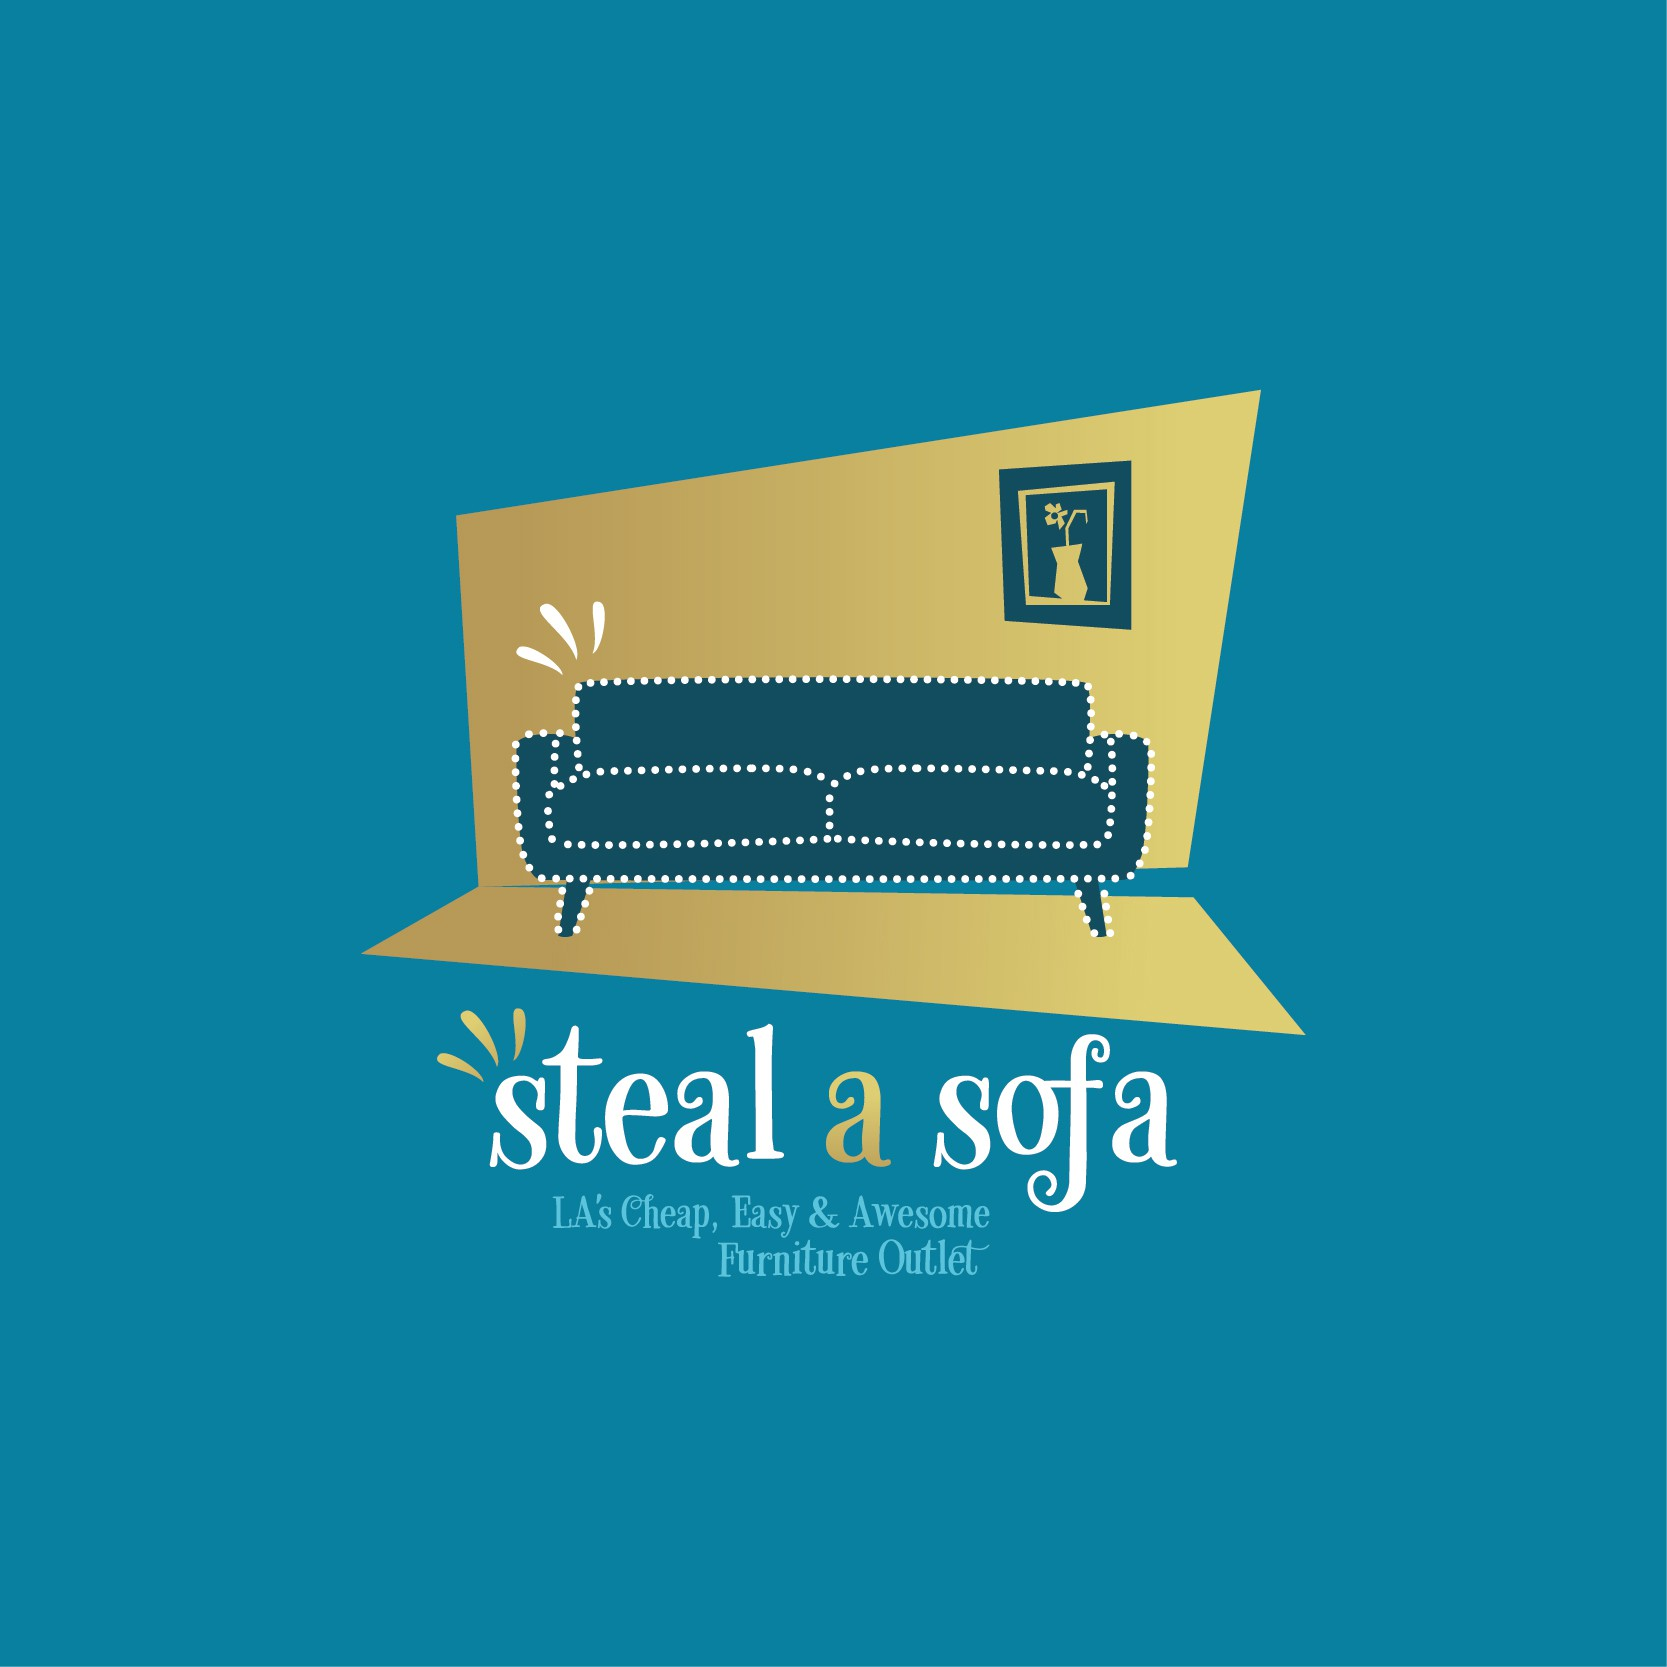 Edgy & Fun Logo Needed for Steal-A-Sofa Furniture Store